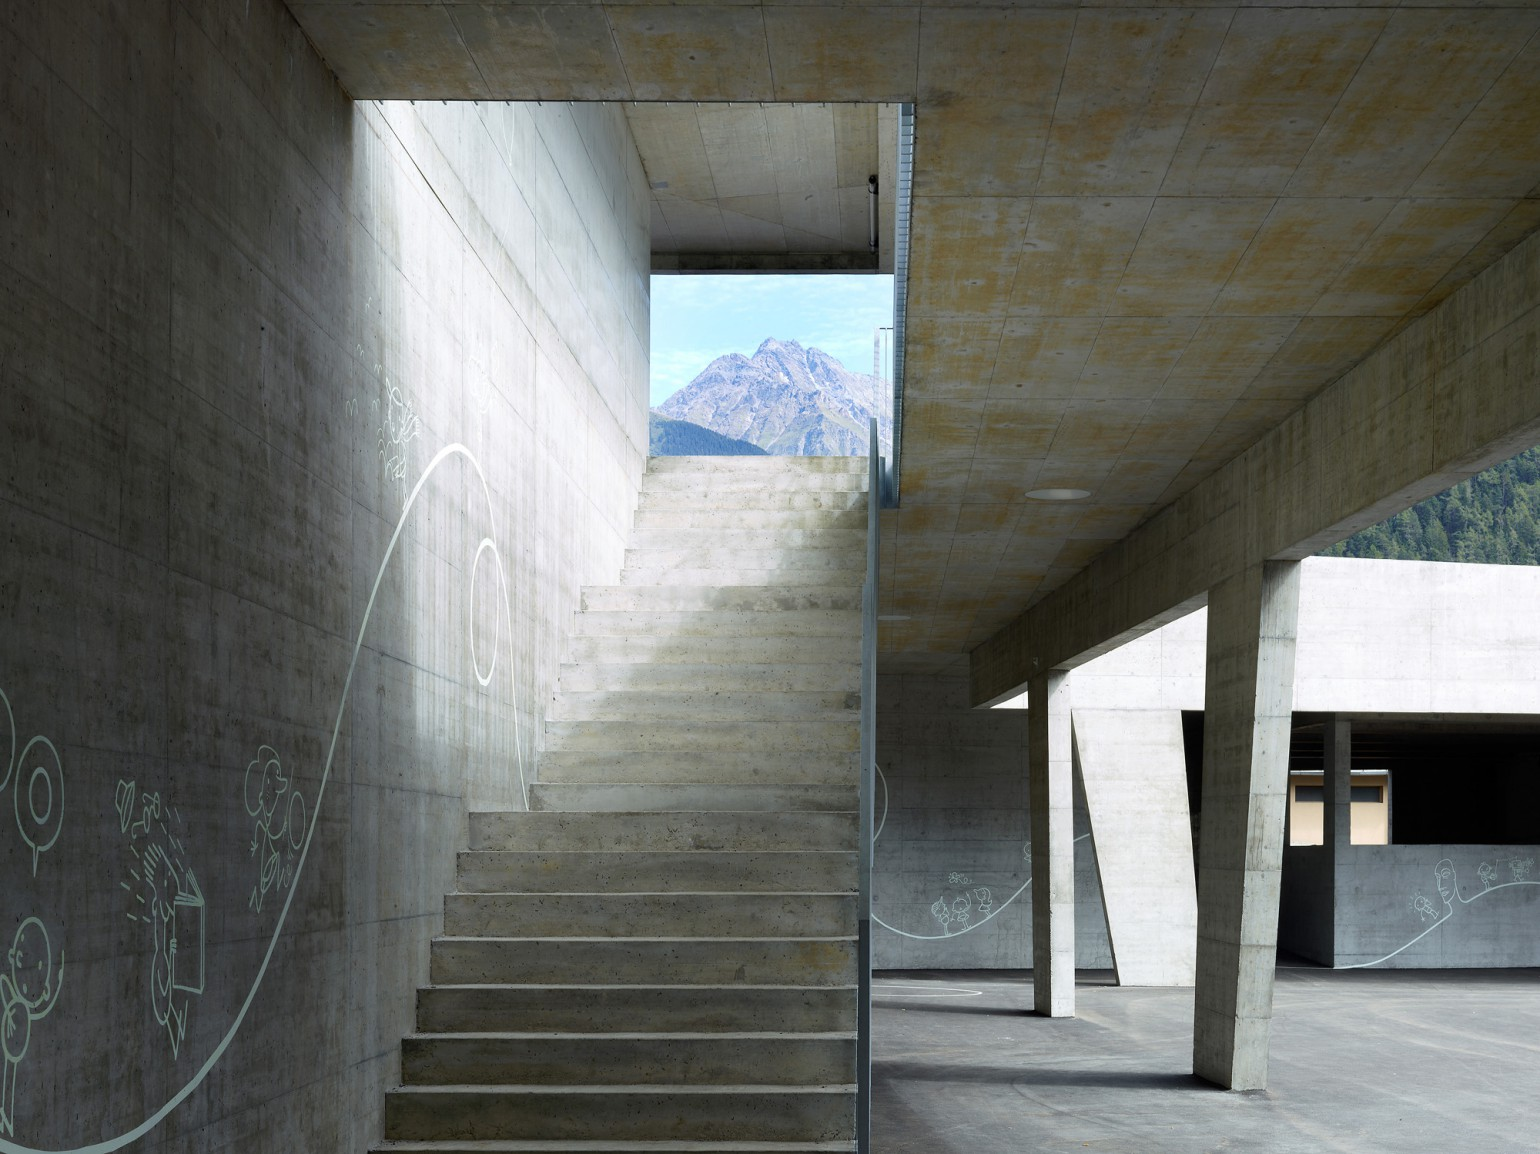 ecole_primaire_volleges_meyer_architecture_sion_02